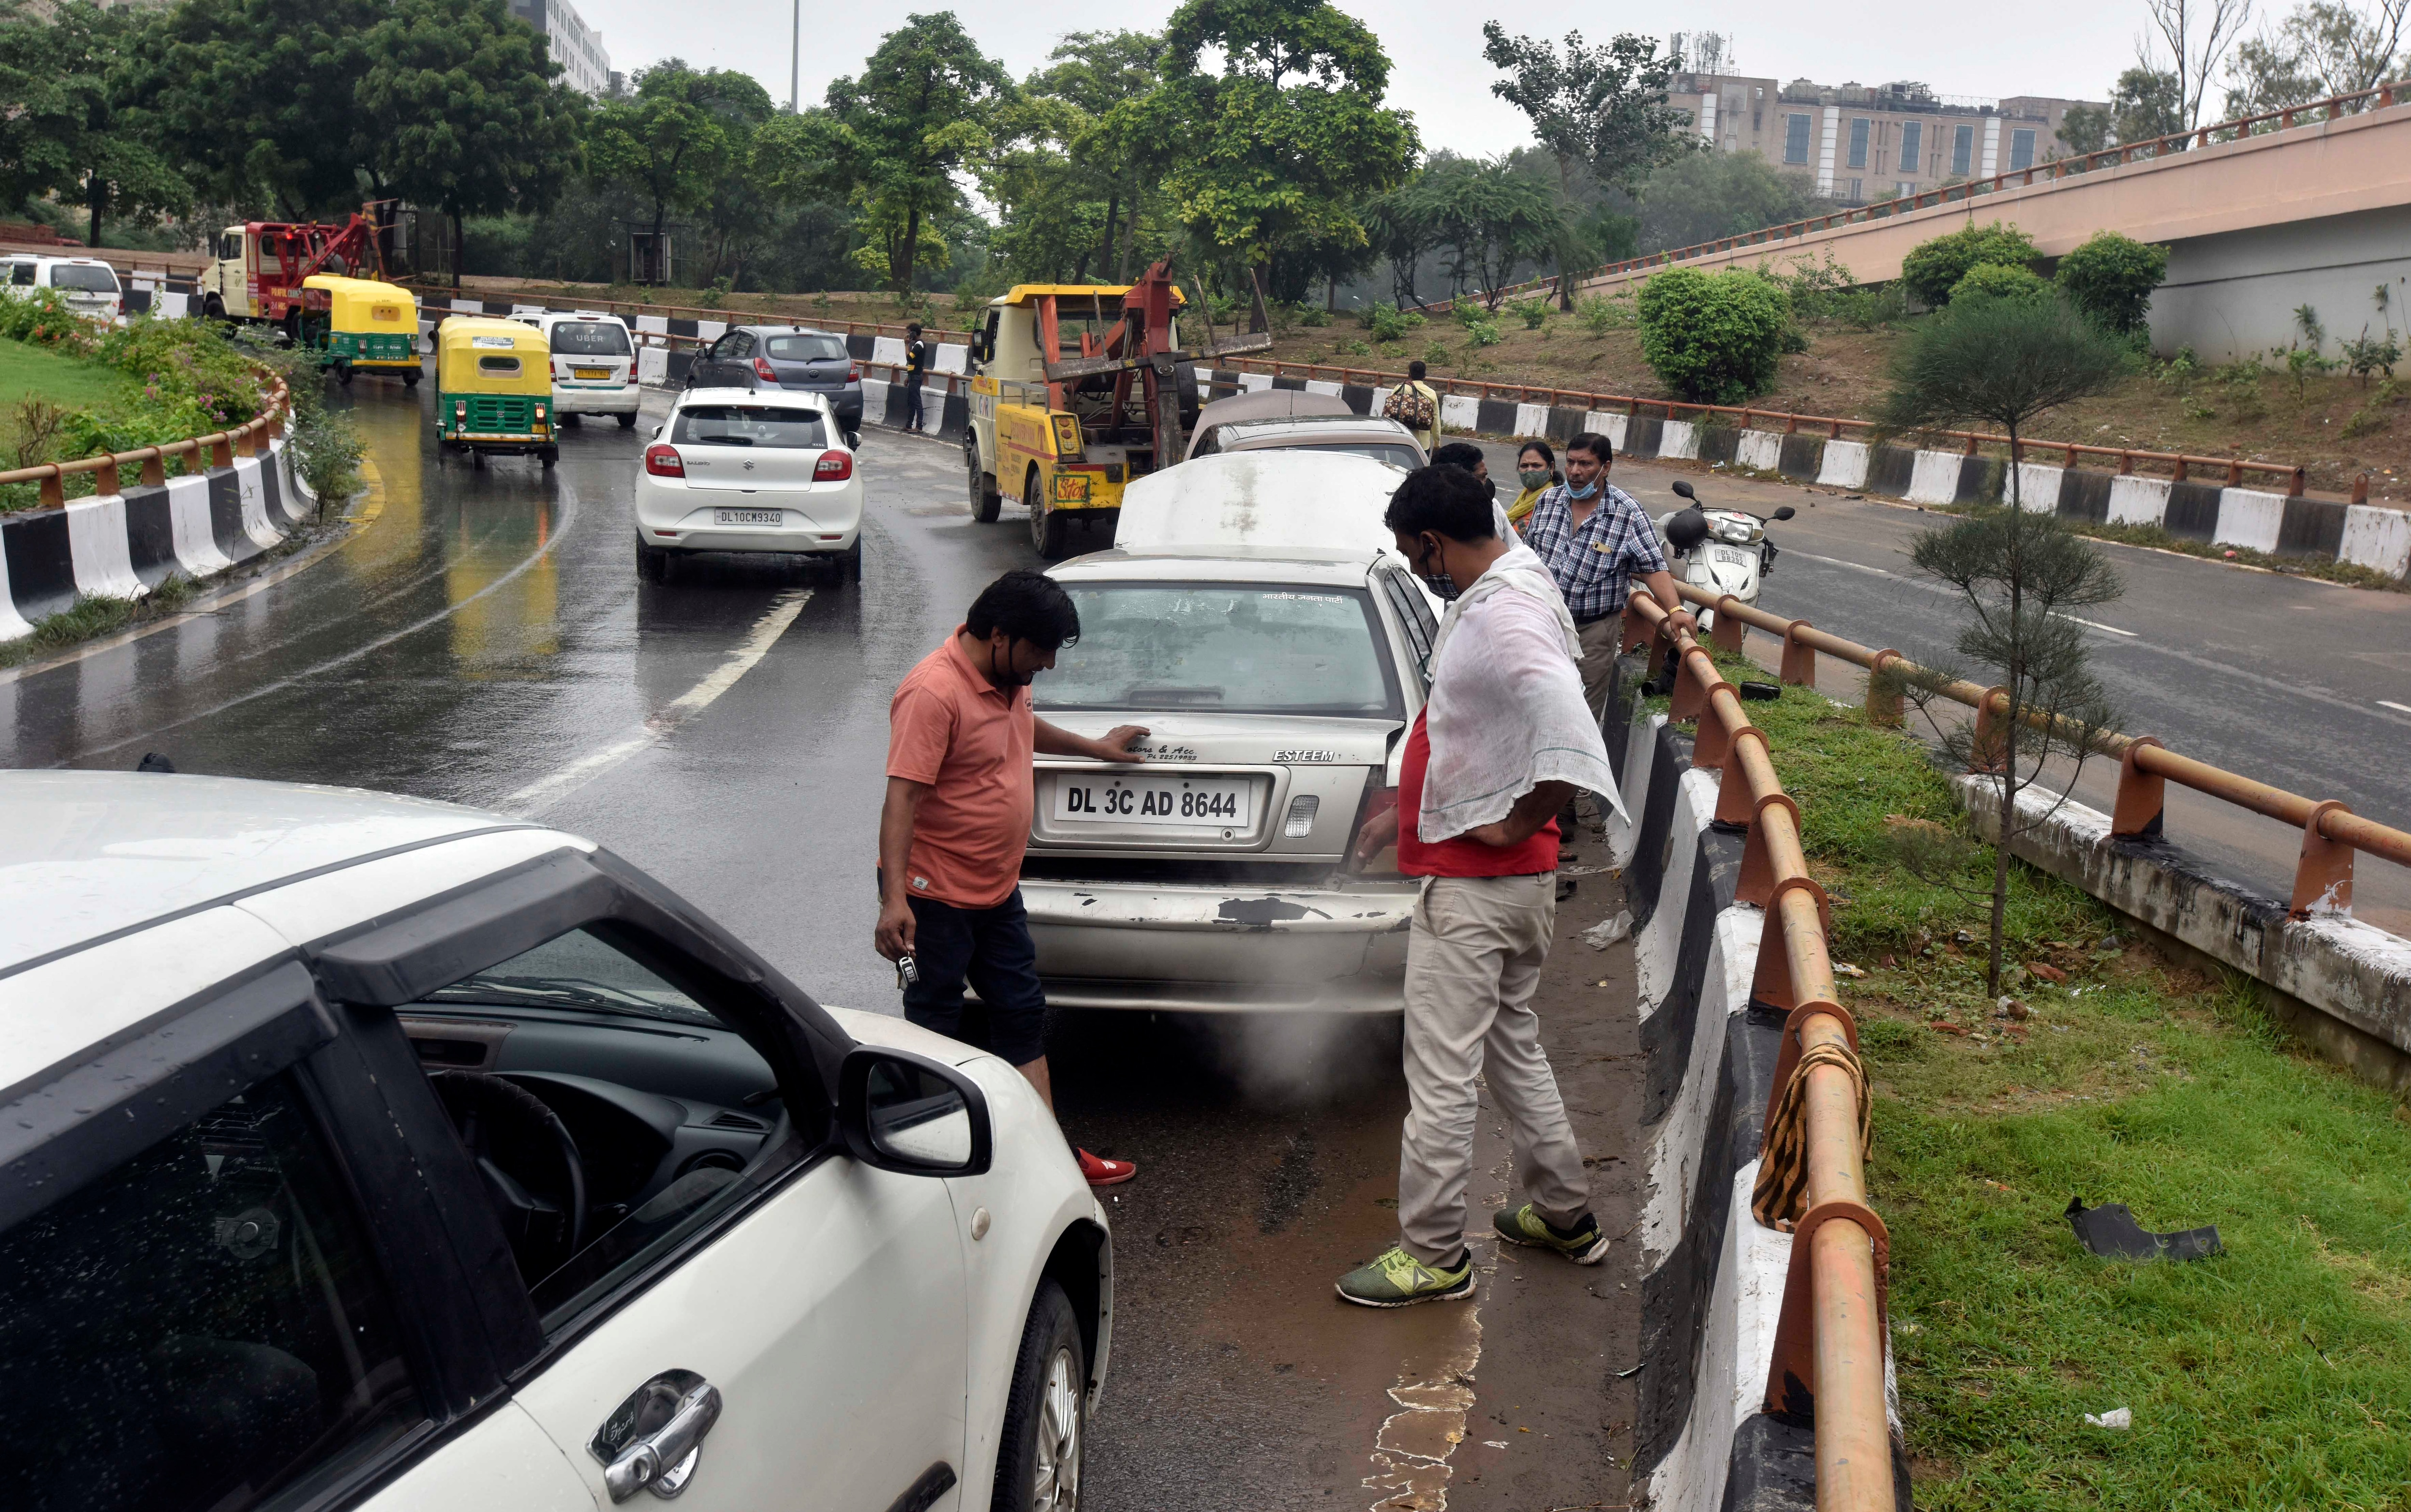 Numerous incidents of accidents as well as vehicular malfunctions only contributed to the traffic mess. (Sanjeev Verma/HT PHOTO)